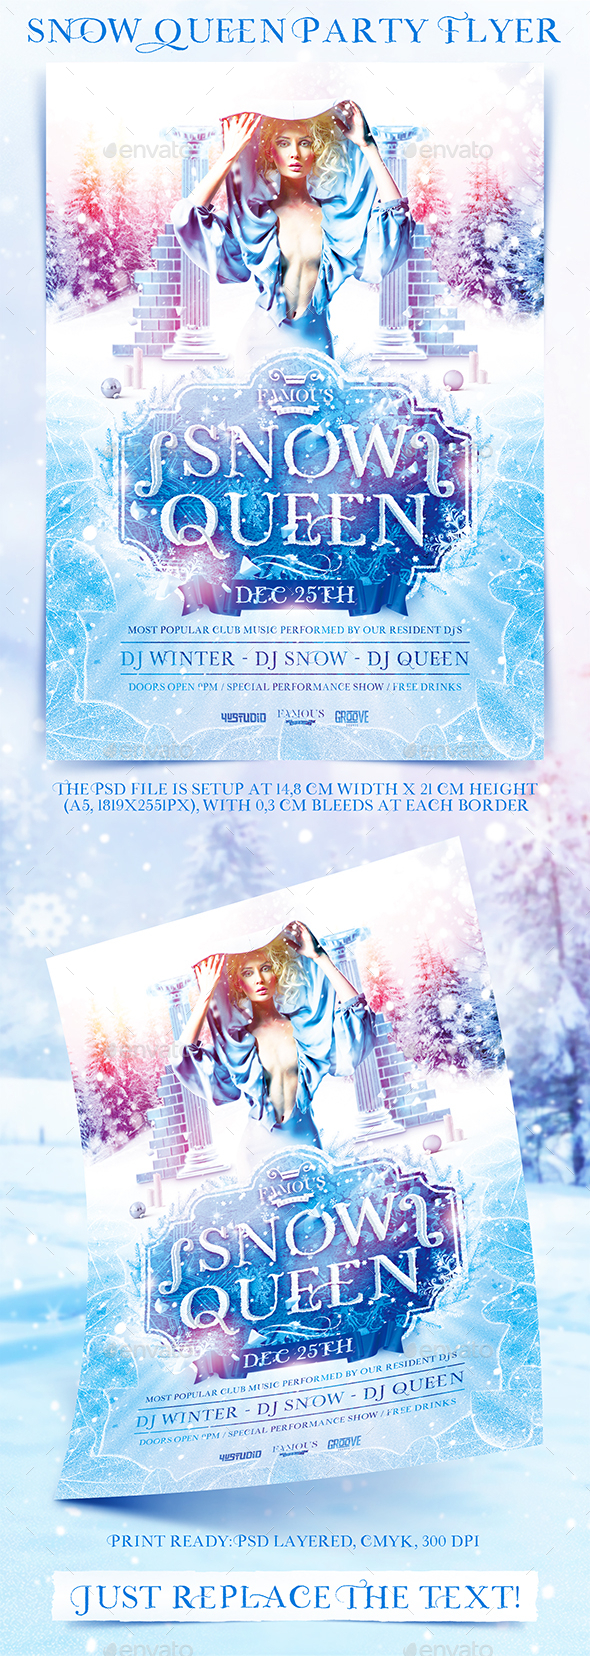 Snow Queen Party Flyer - Events Flyers